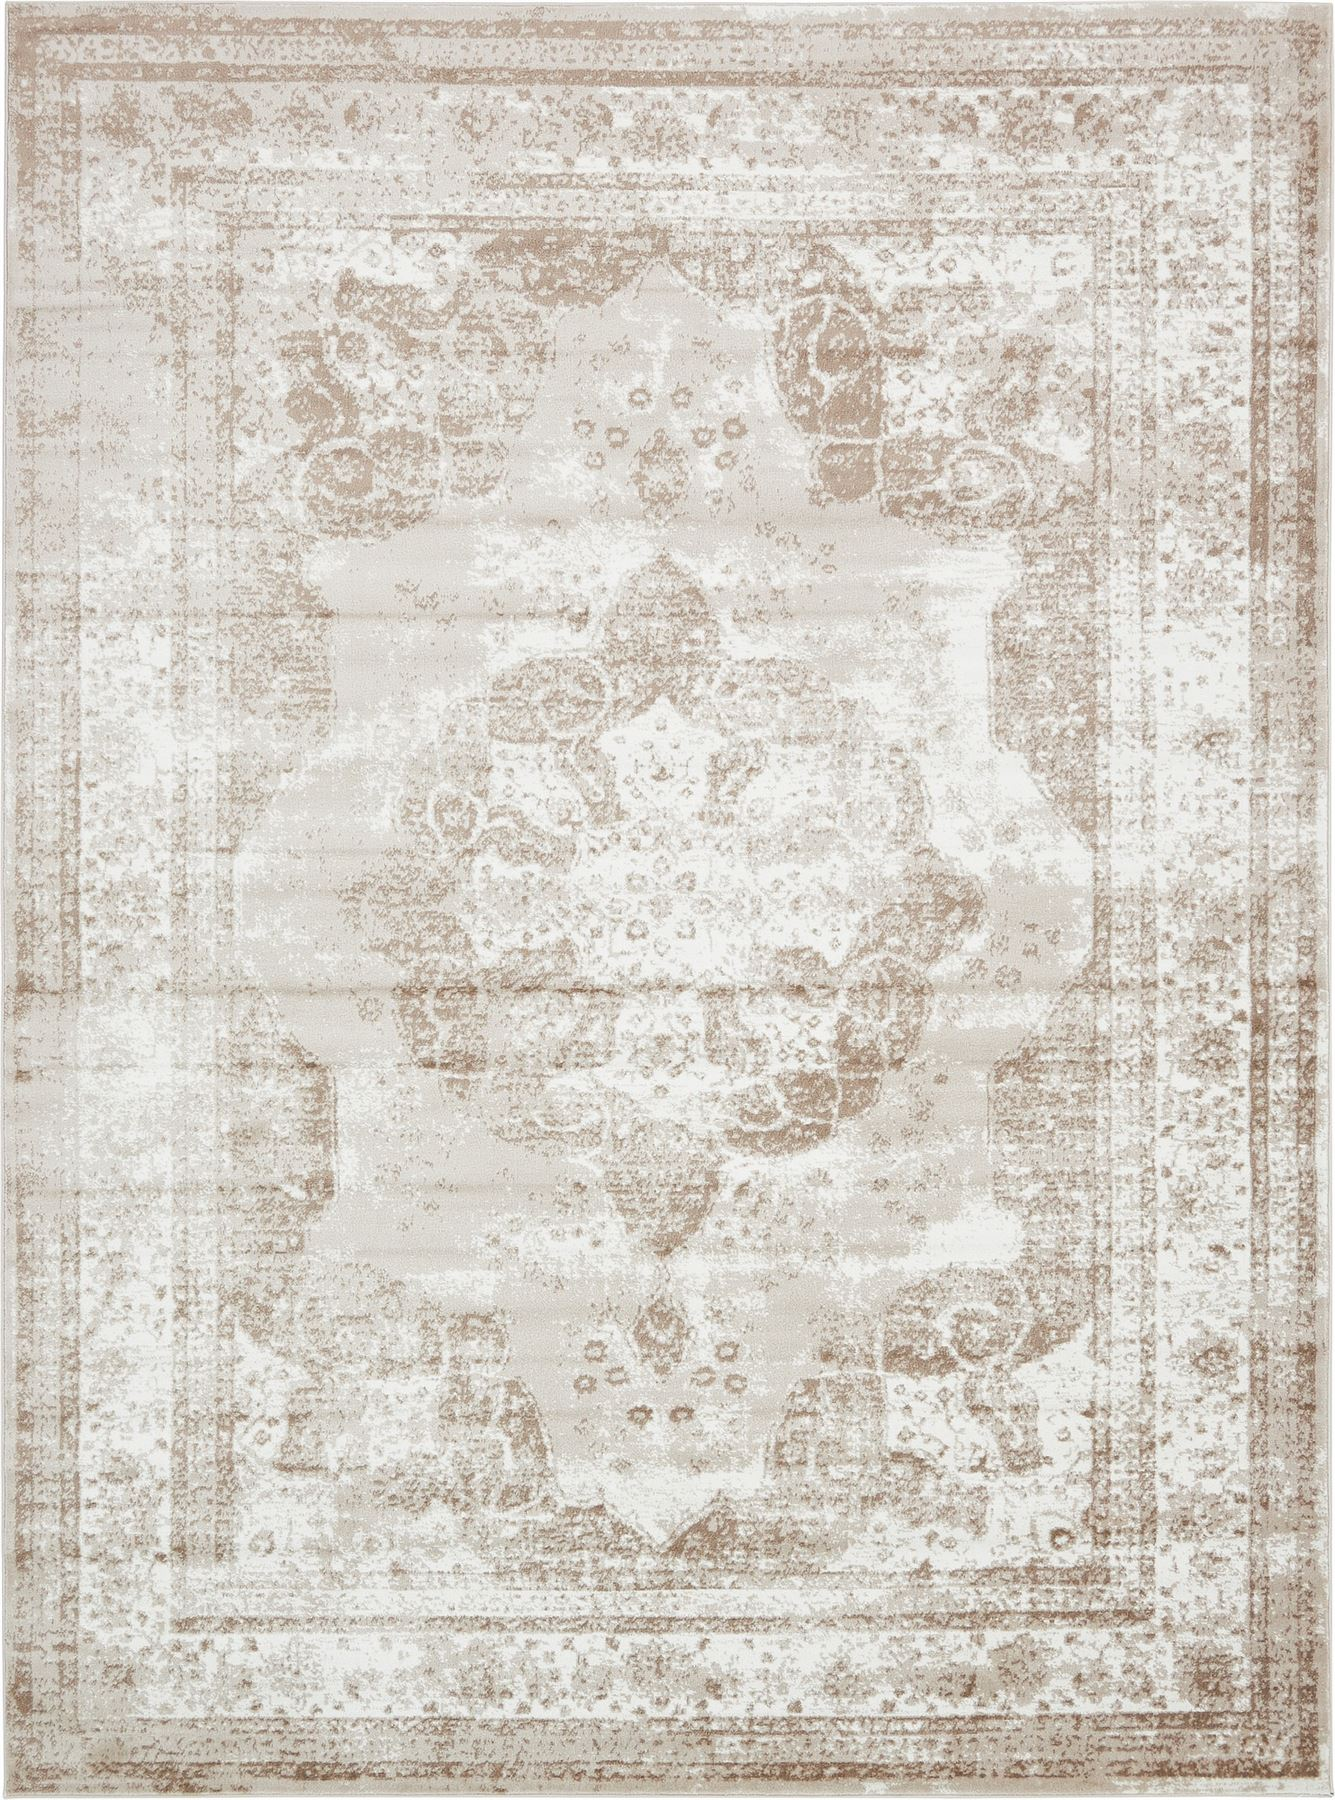 Transitional Large Persian Design Area Rug Faded Small